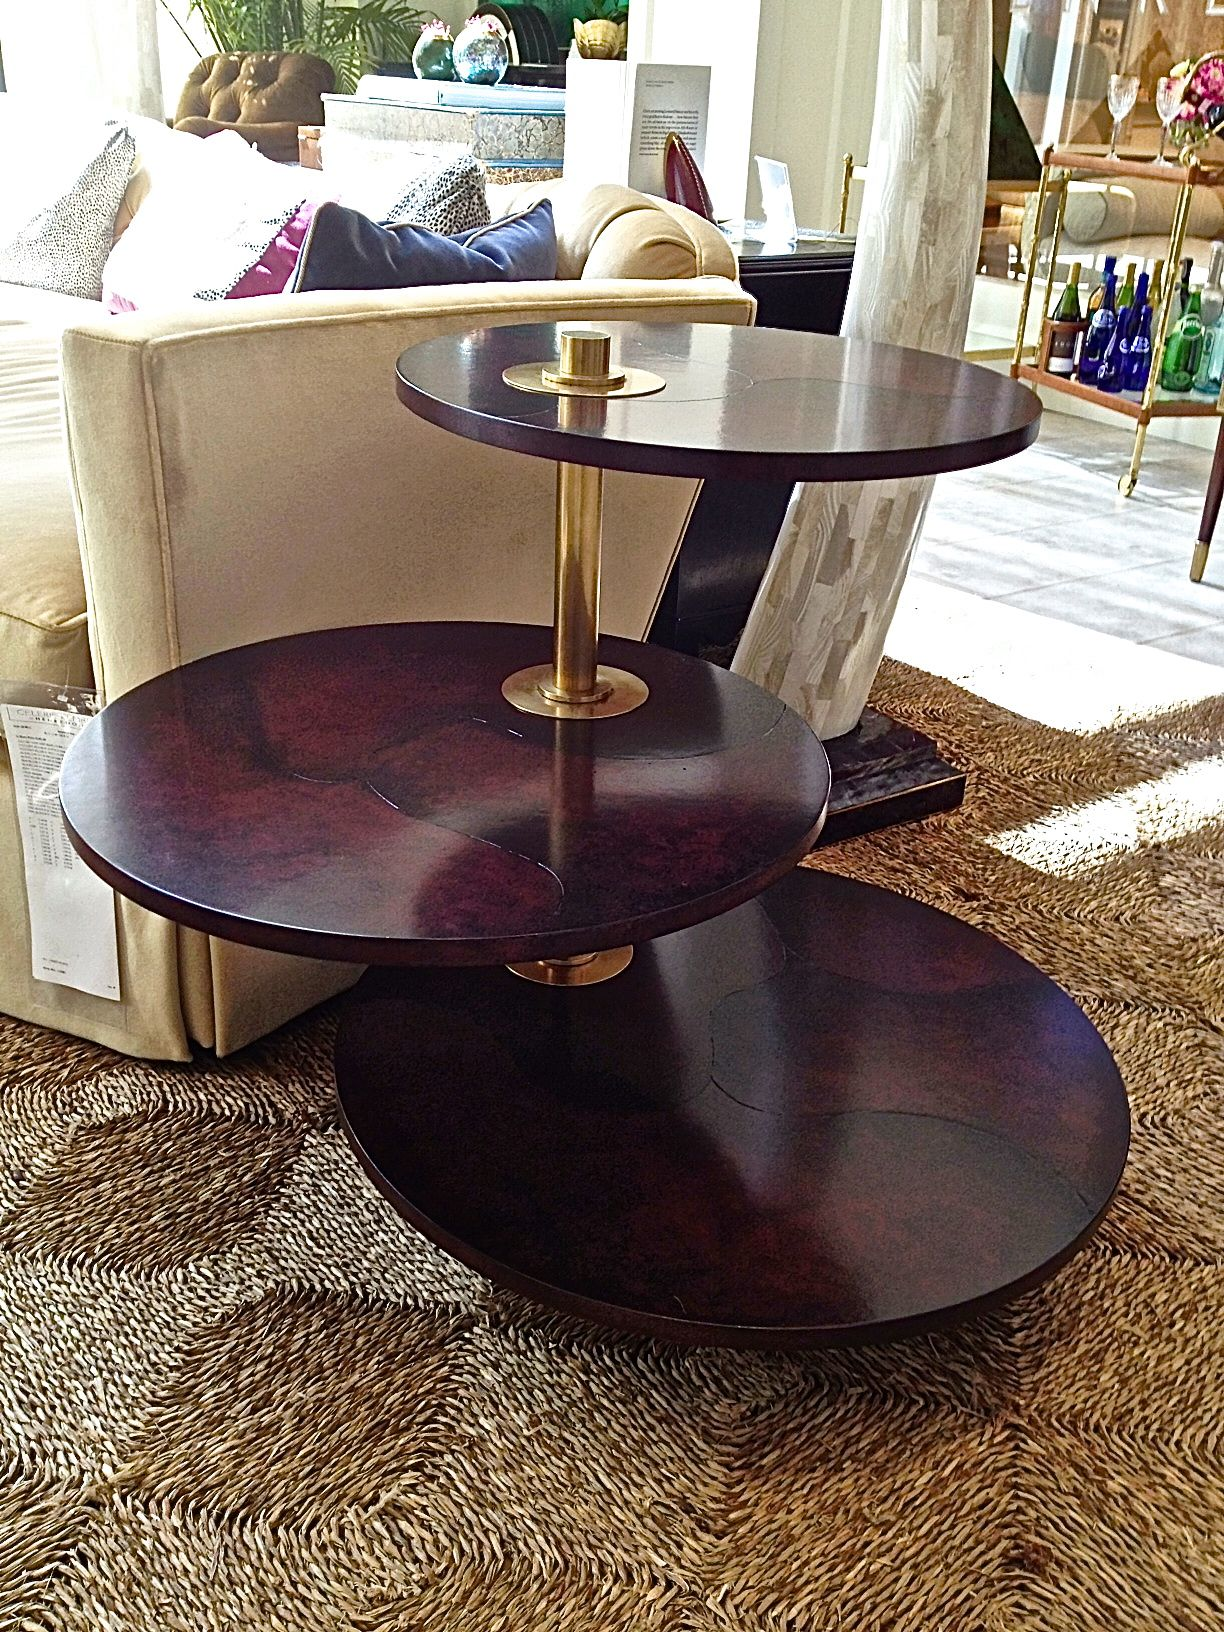 Cool Occasional Table With Movable Surfaces By Celerie Kemble For Henredon  Furniture Http://